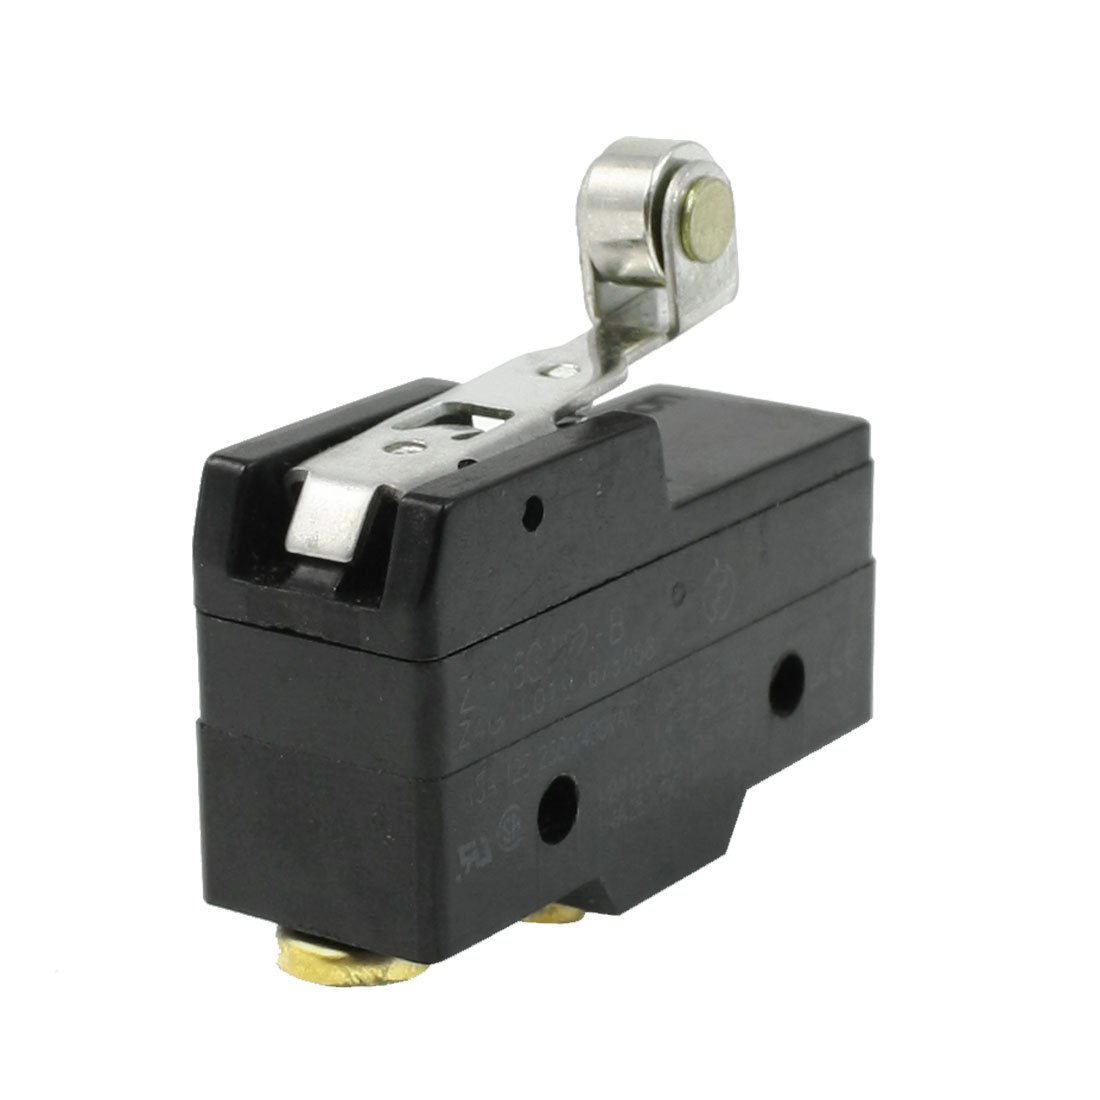 Uxcell a13061400ux0752 Short Roller Lever Type Actuator Limit Switch, Z-15GW22-B